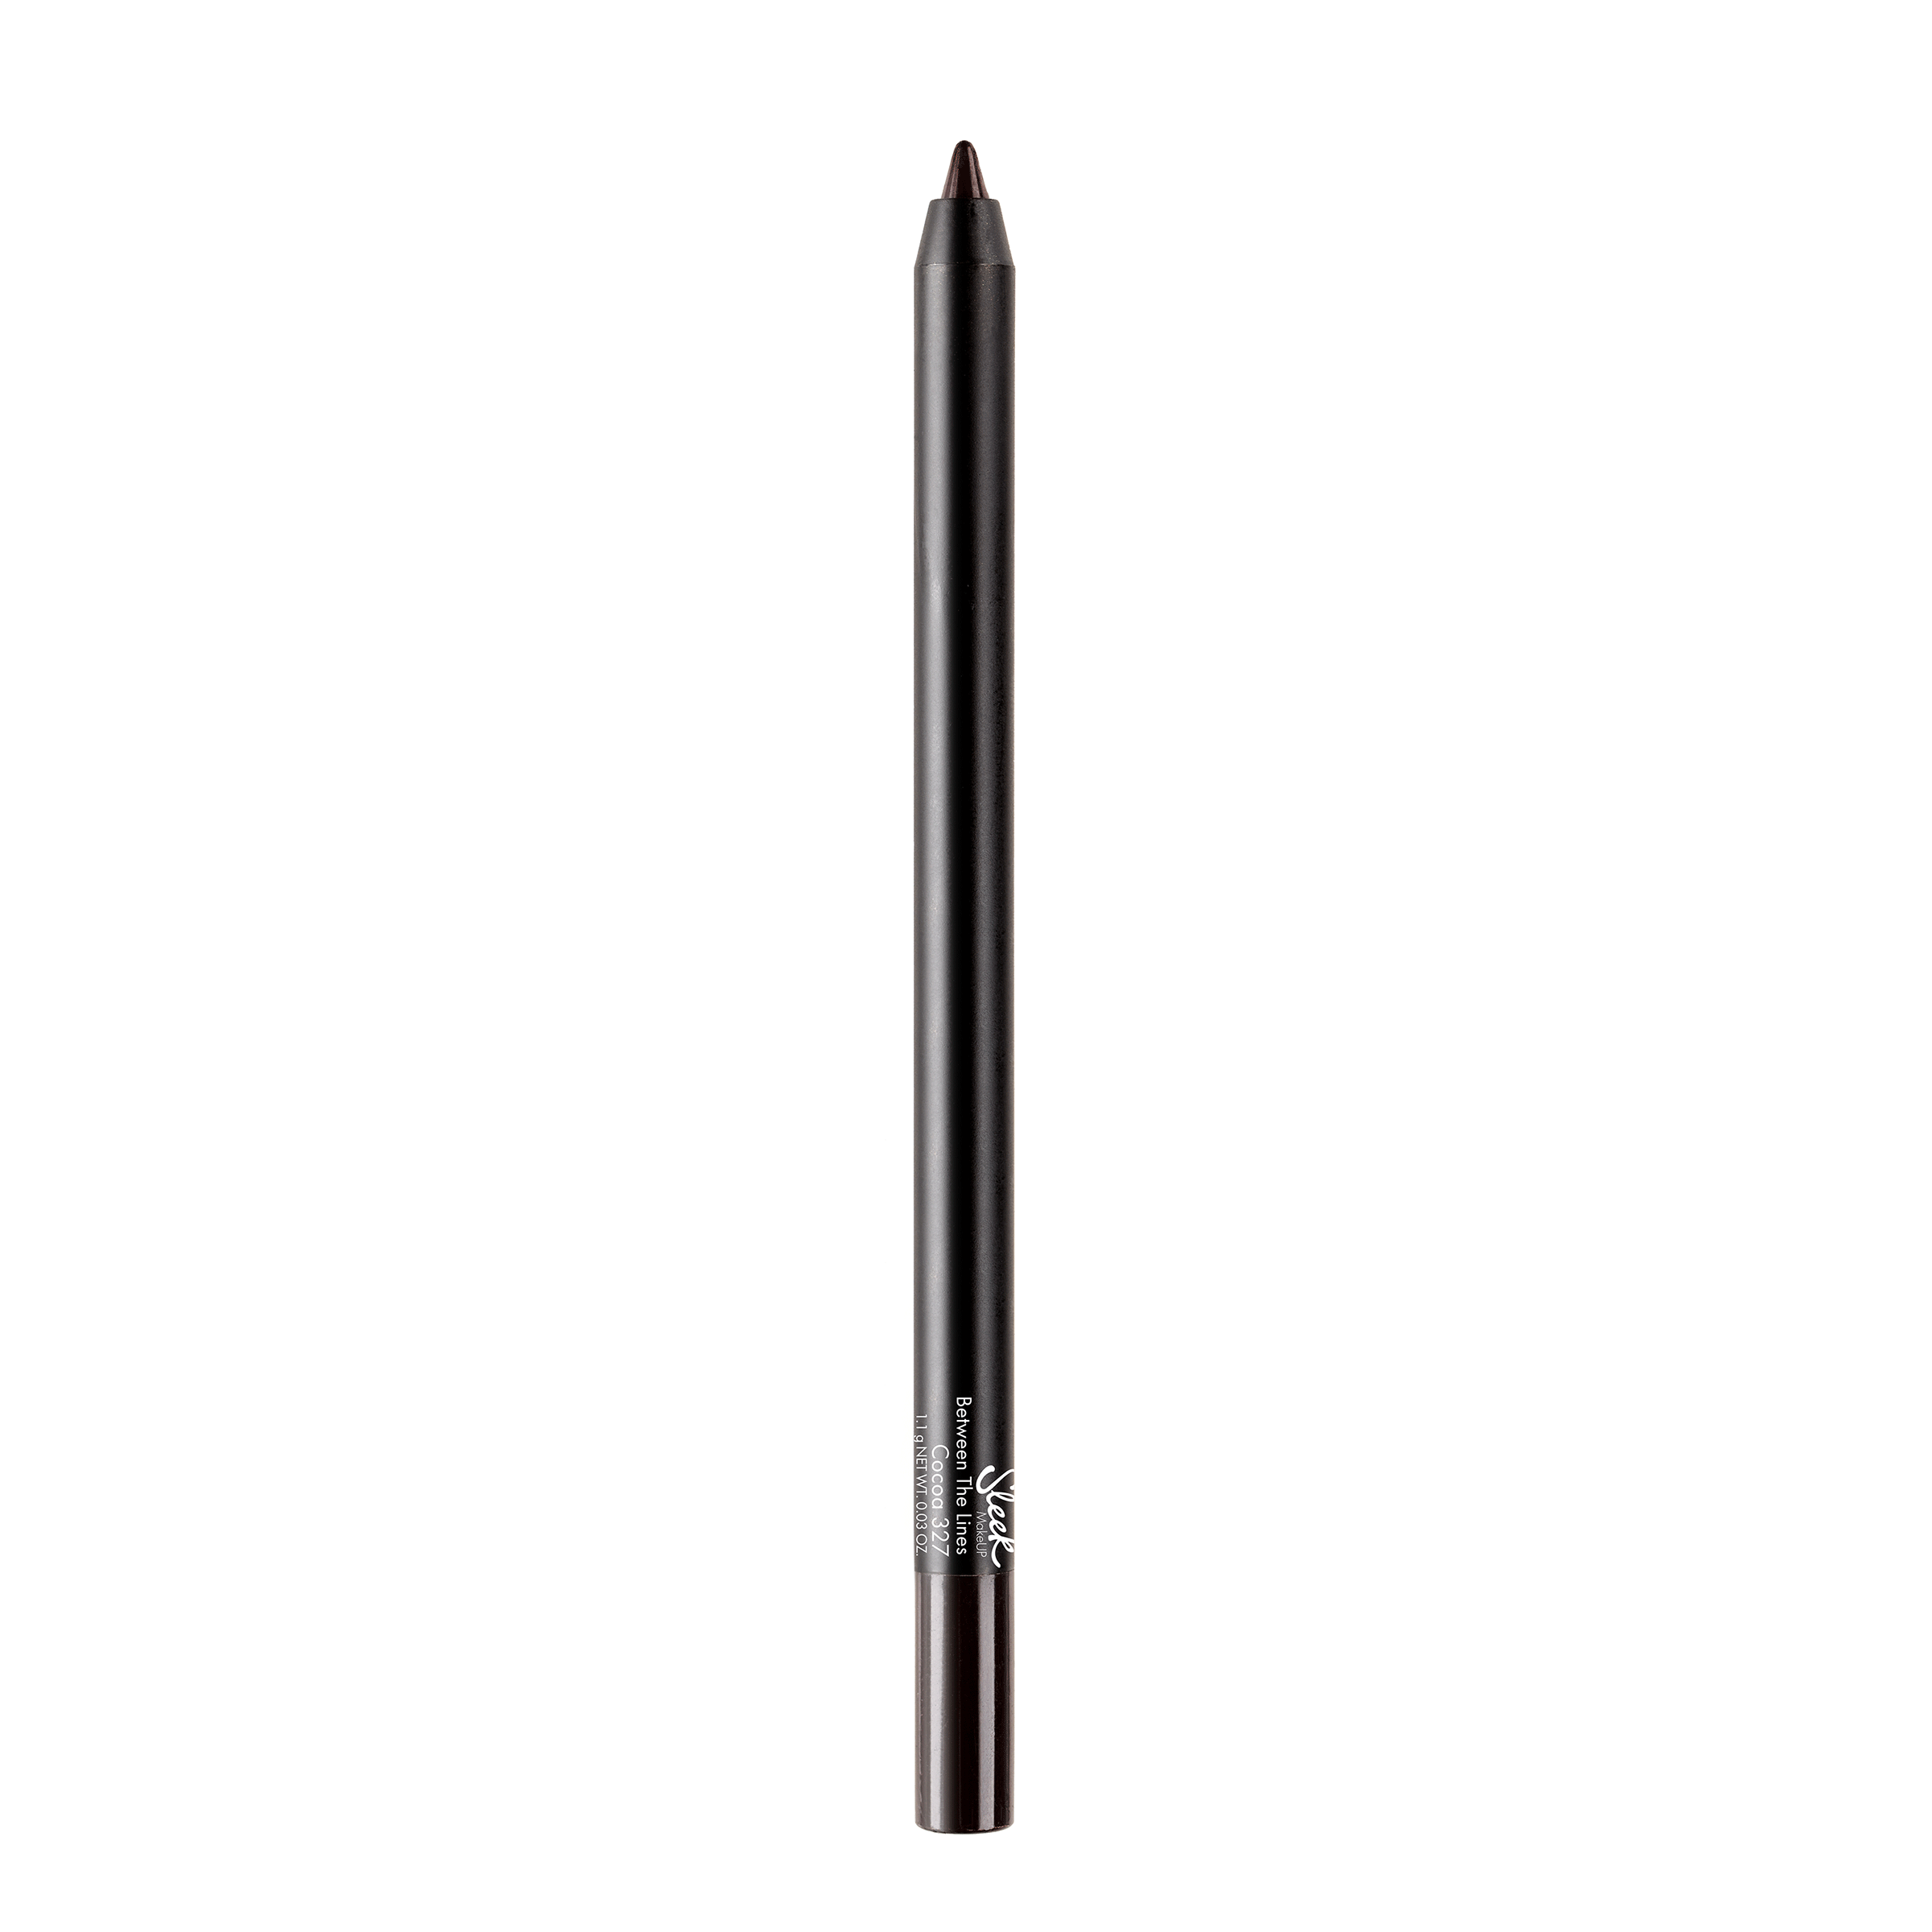 Between The Lines Liner Cocoa Sleek makeup